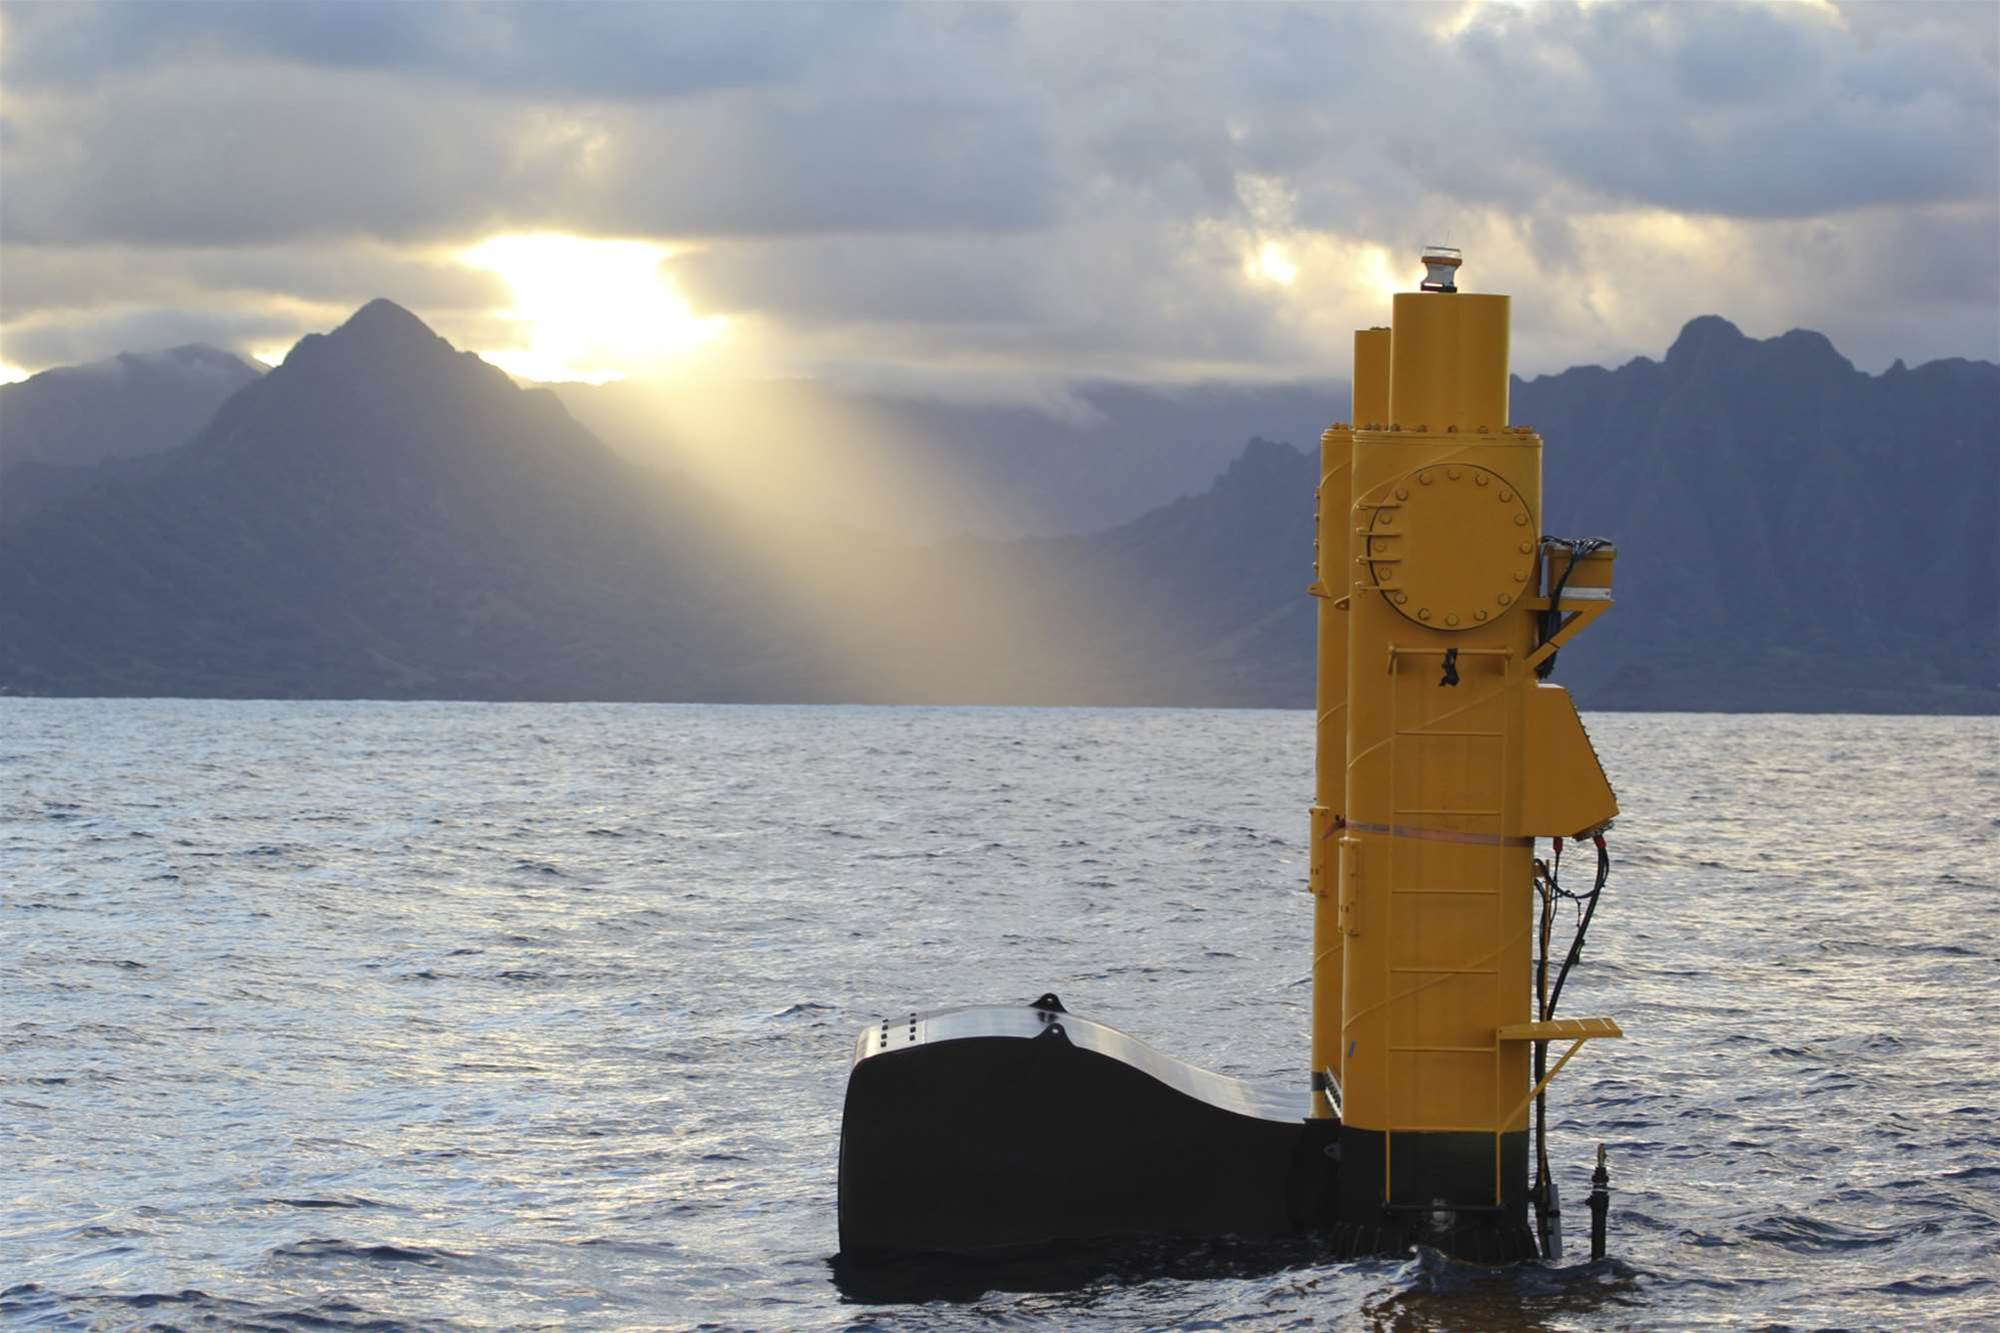 For The First Time, Waves Are Adding Power To The US Grid